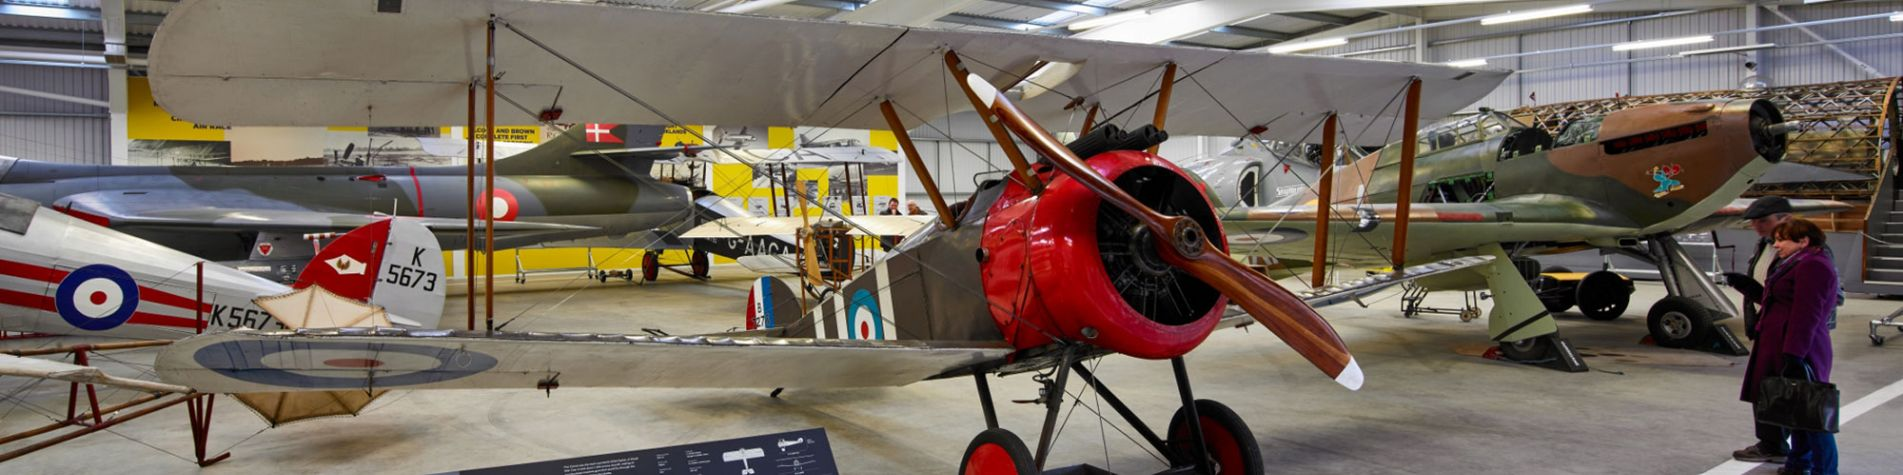 flight-shed-header-sopwith-camel.jpg